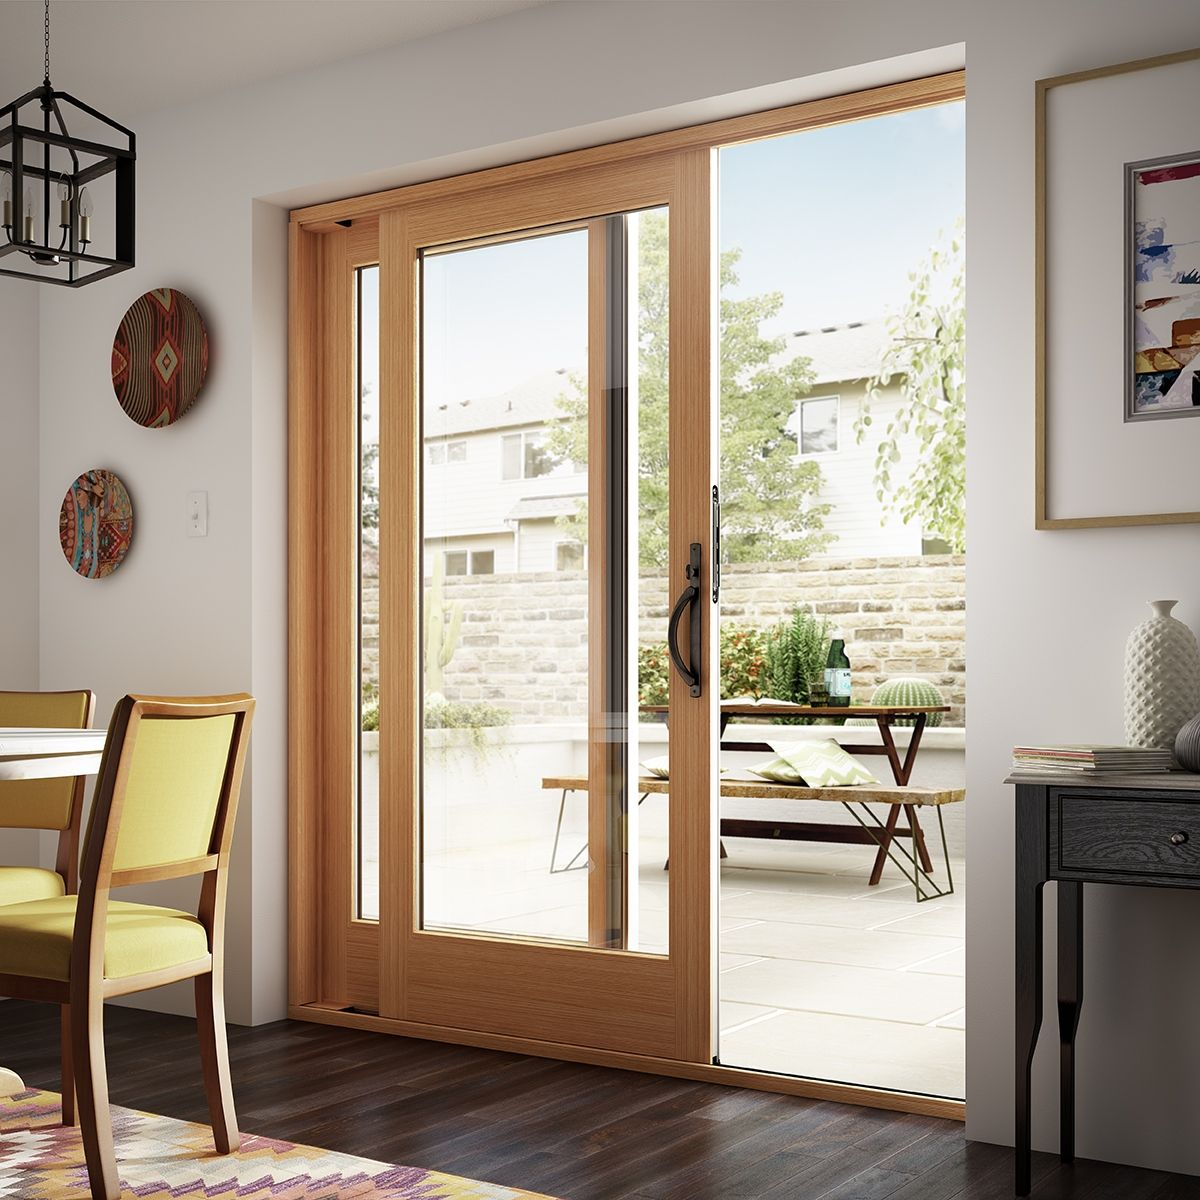 The Beauty Of Genuine Wood Shines Through On This Sierra Pacific Sliding Patio Door Glass Doors Patio Sliding Glass Doors Patio Best Sliding Glass Doors